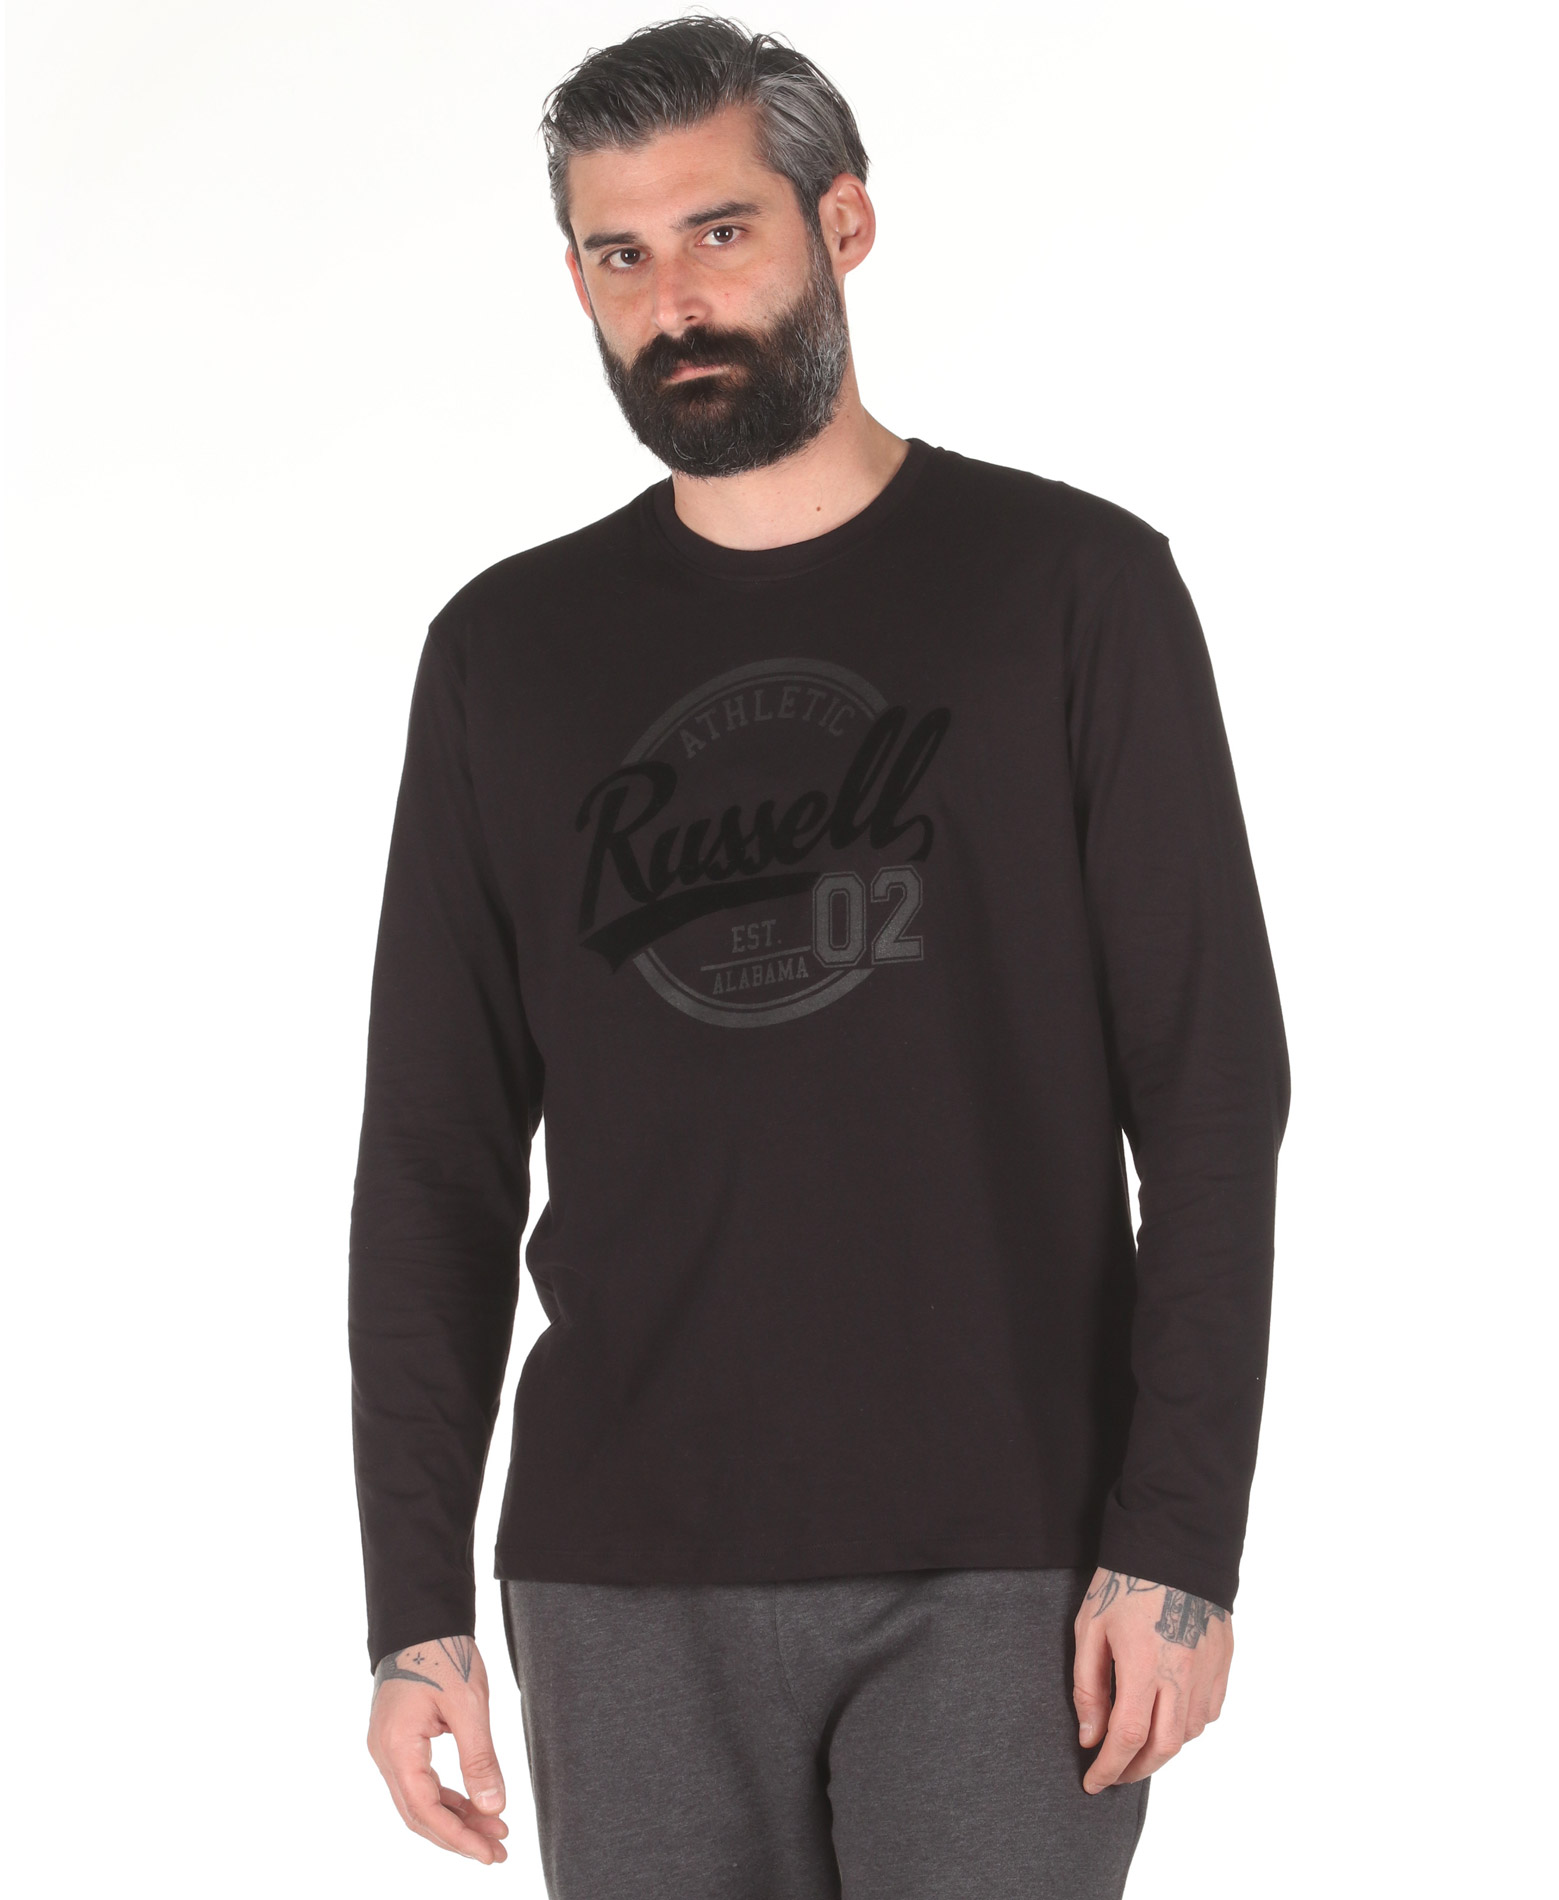 Russell Athletic COLLEGIATE – L/S CREWNECK TEE A0-030-2-099 Μαύρο